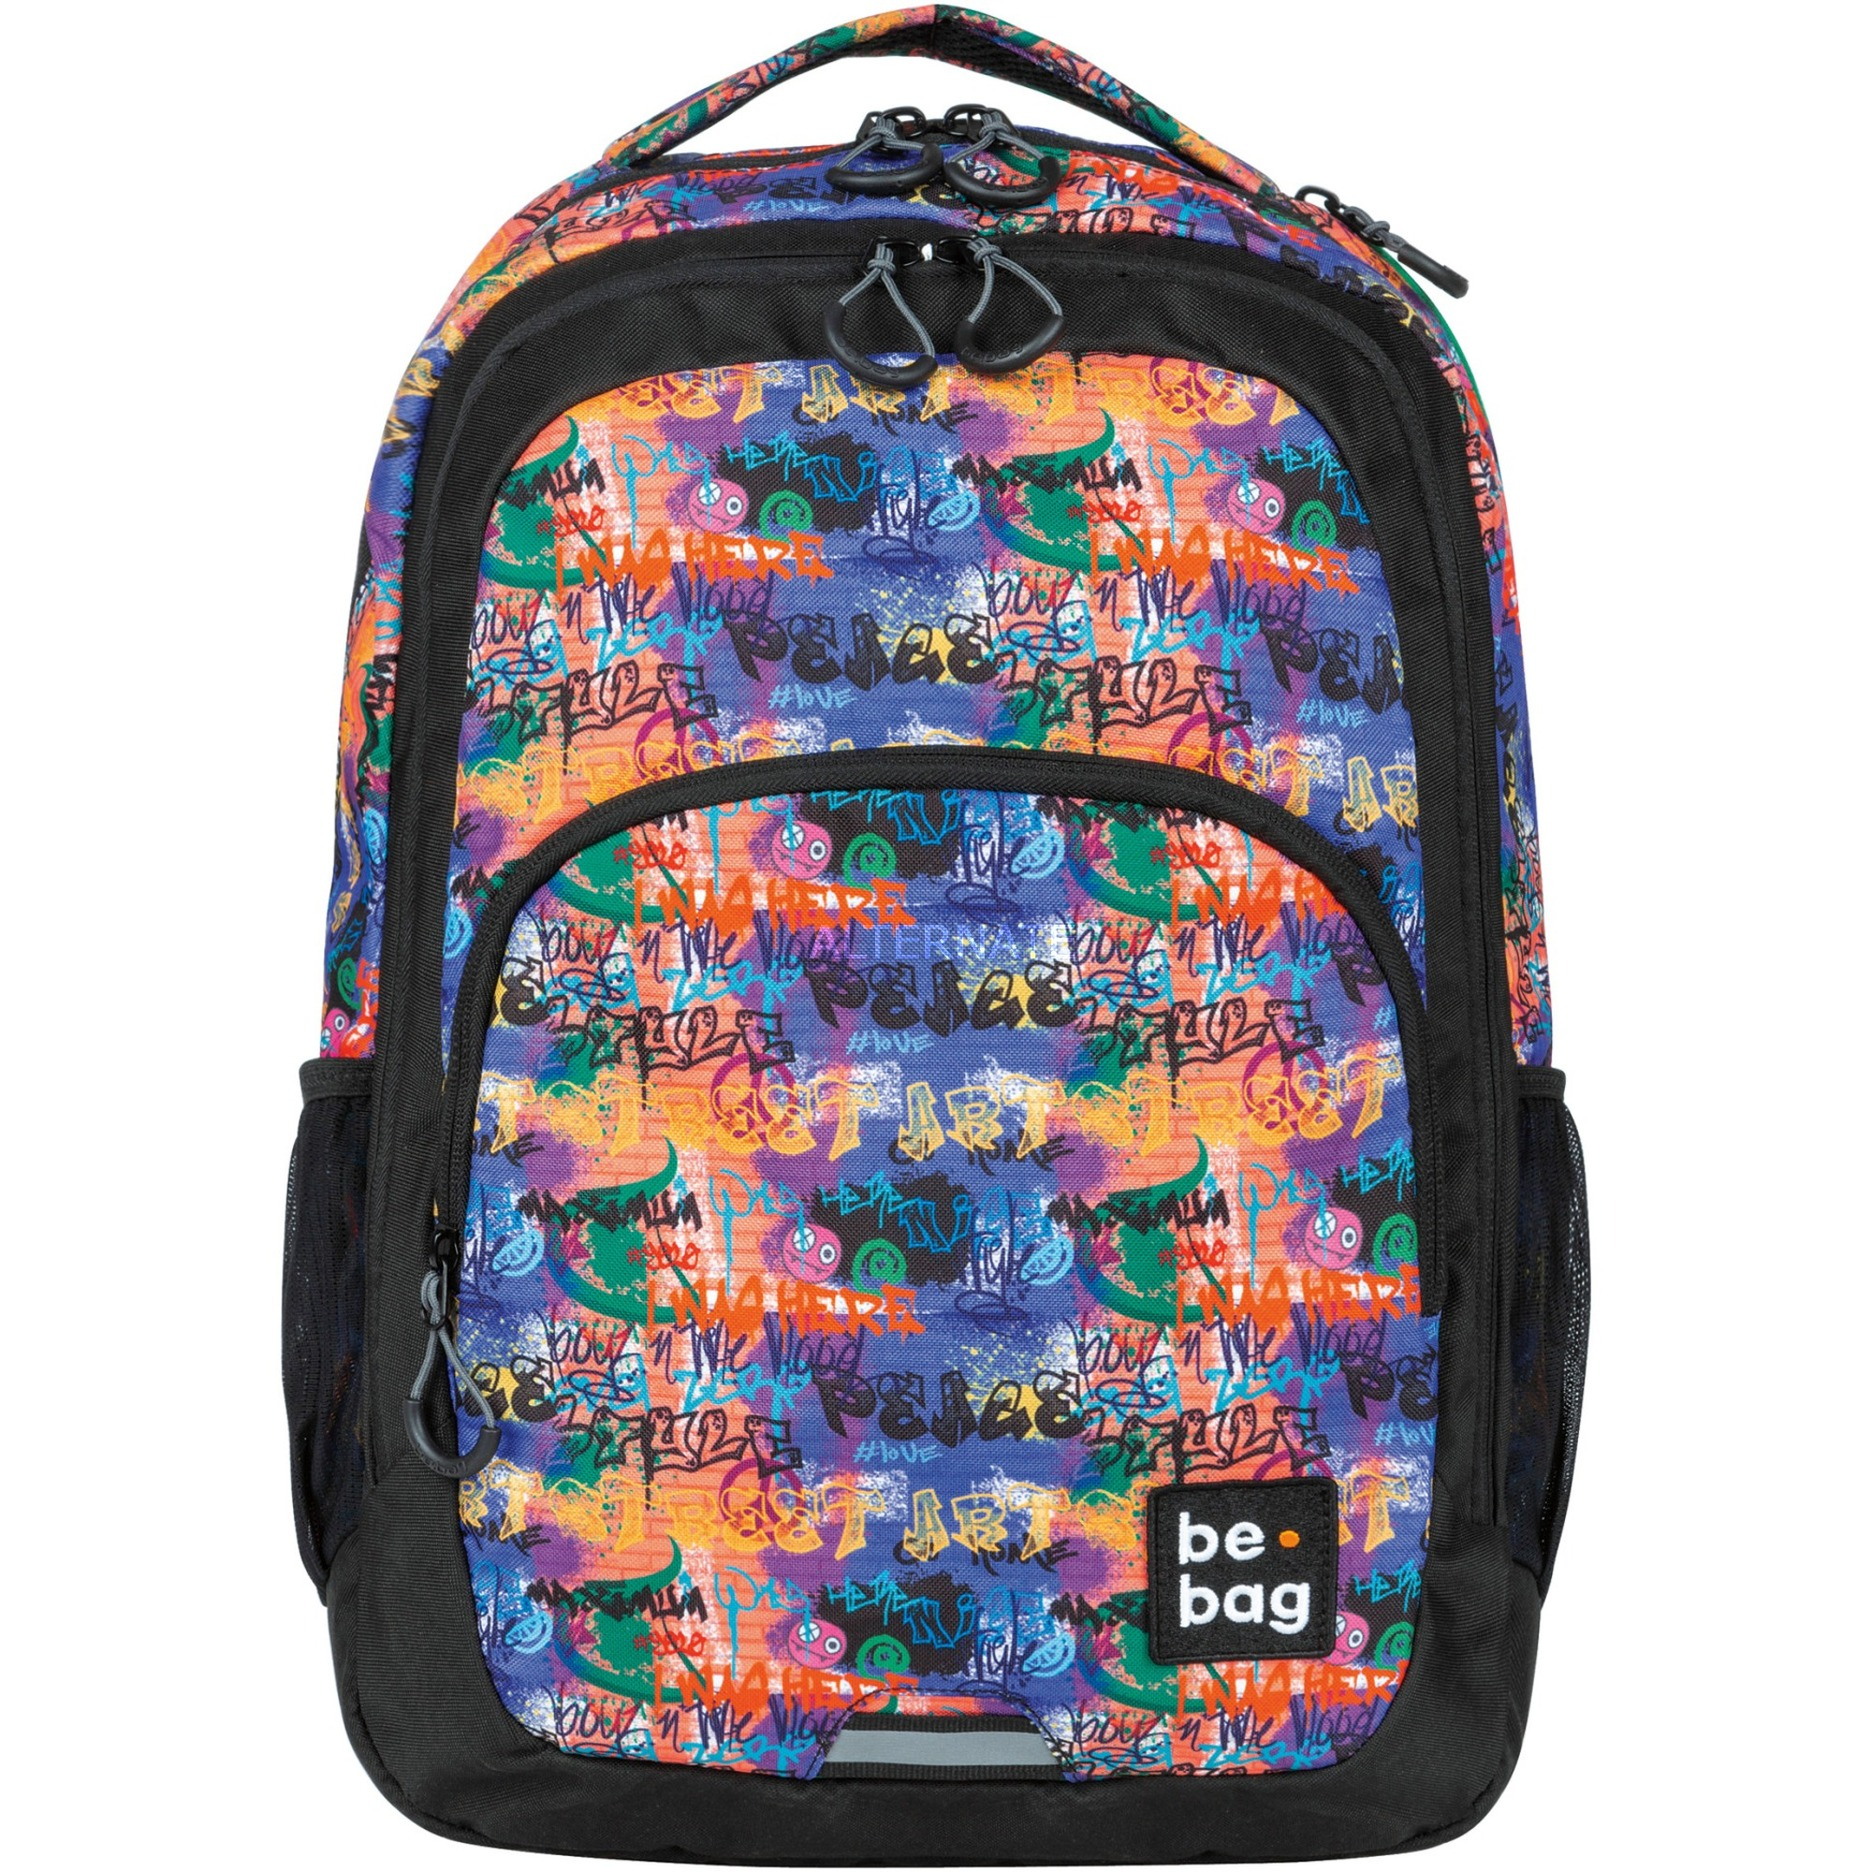 be.ready street art no 1, Rucksack von be bag